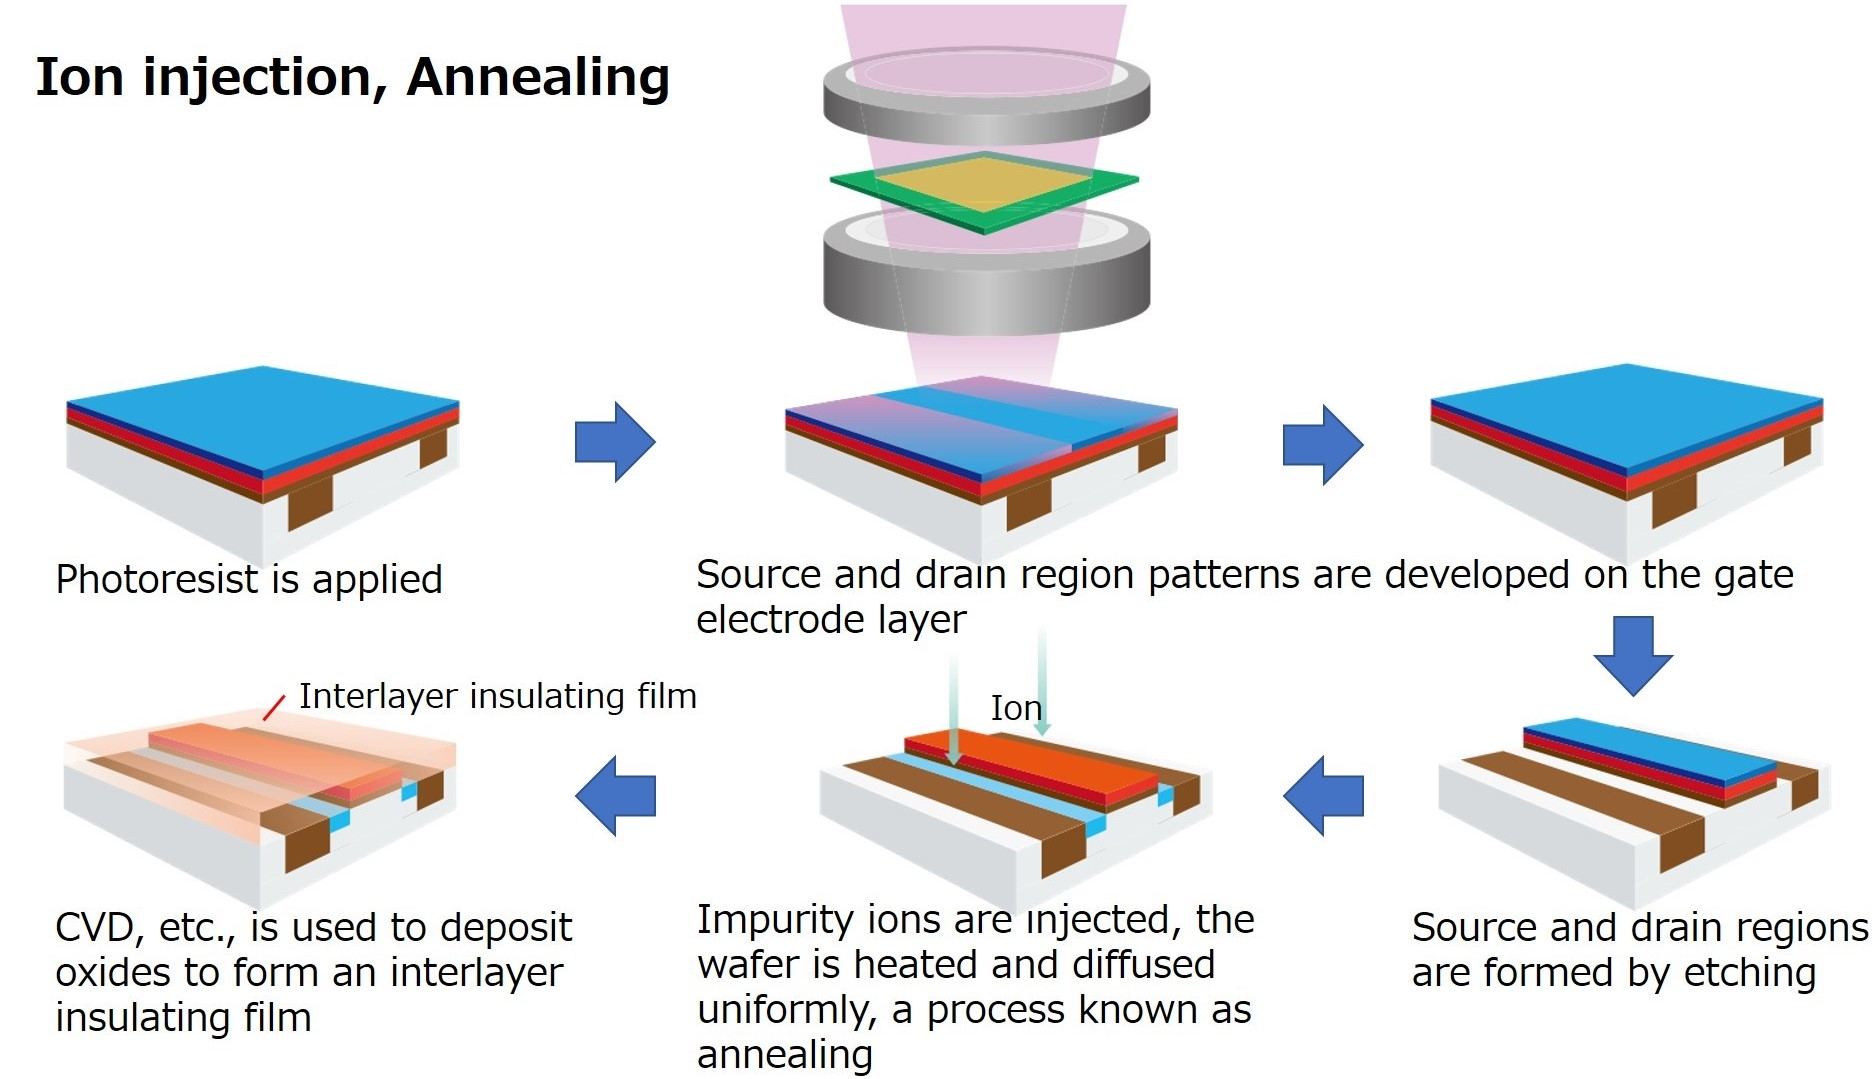 Ion injection, Annealing